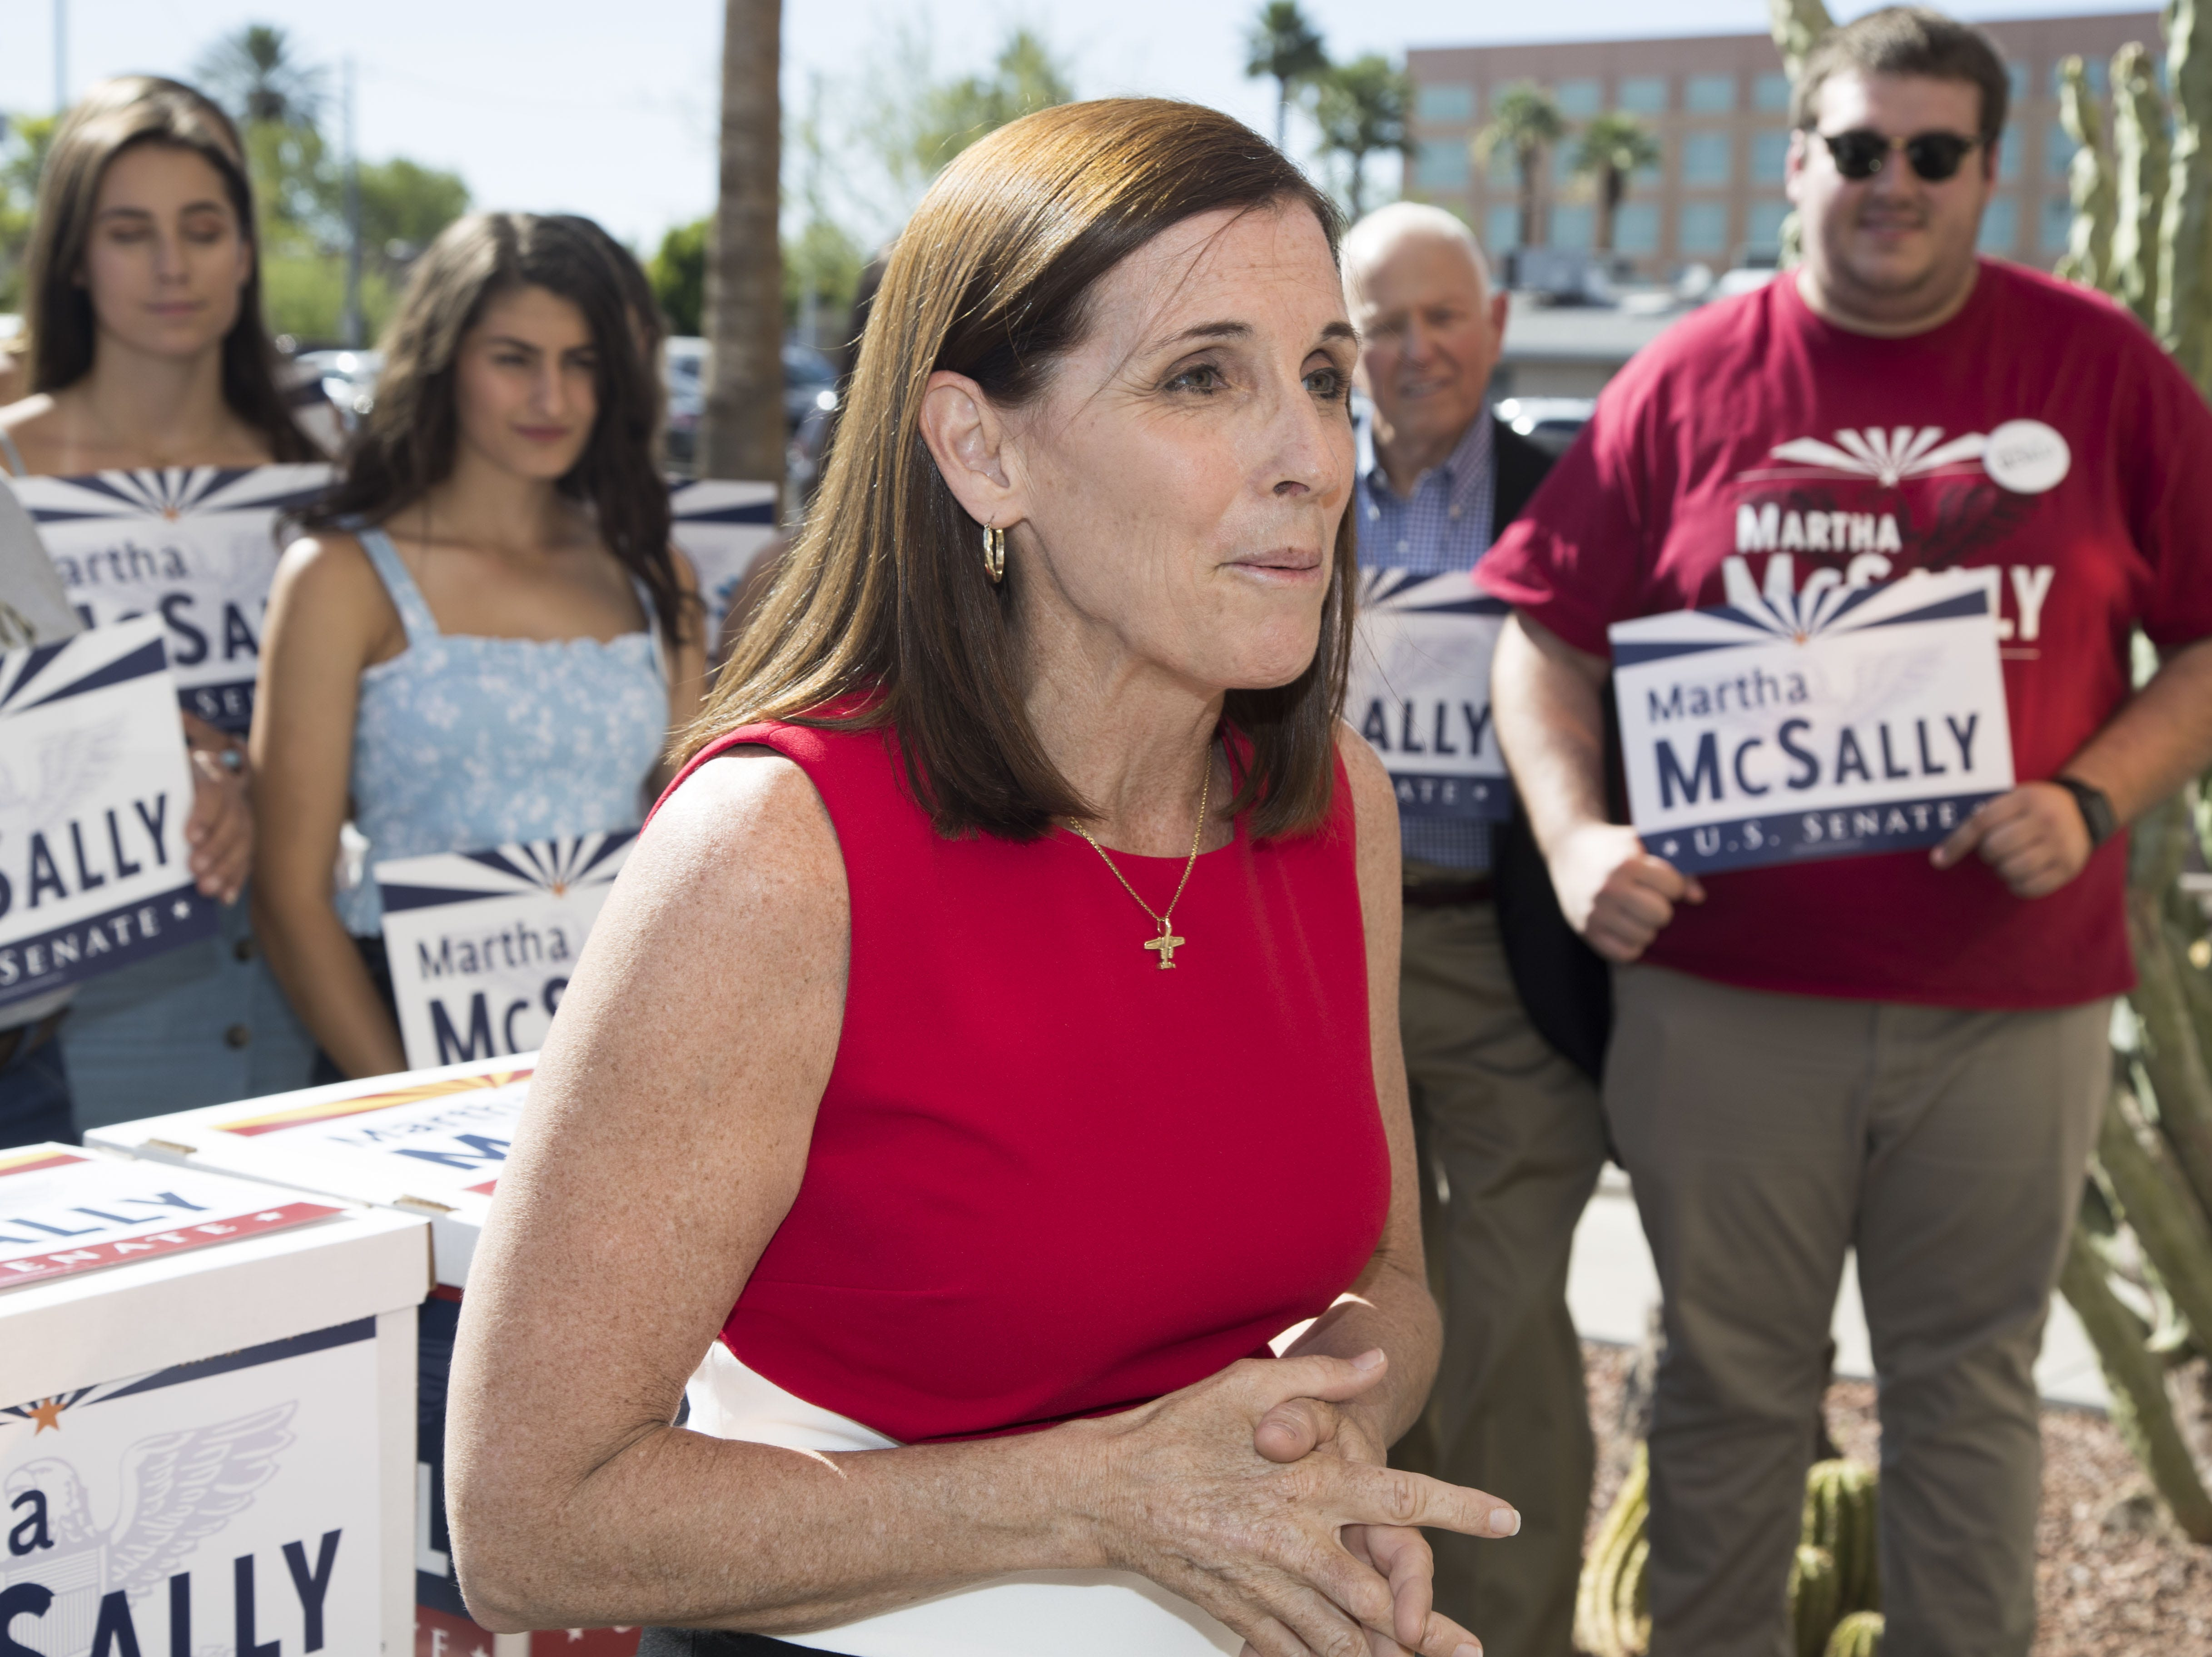 U.S. Rep. Martha McSally, with her supporters, files her signatures to appear on the ballot for U.S. Senate at the Arizona Secretary of State's Office on May 29, 2018.